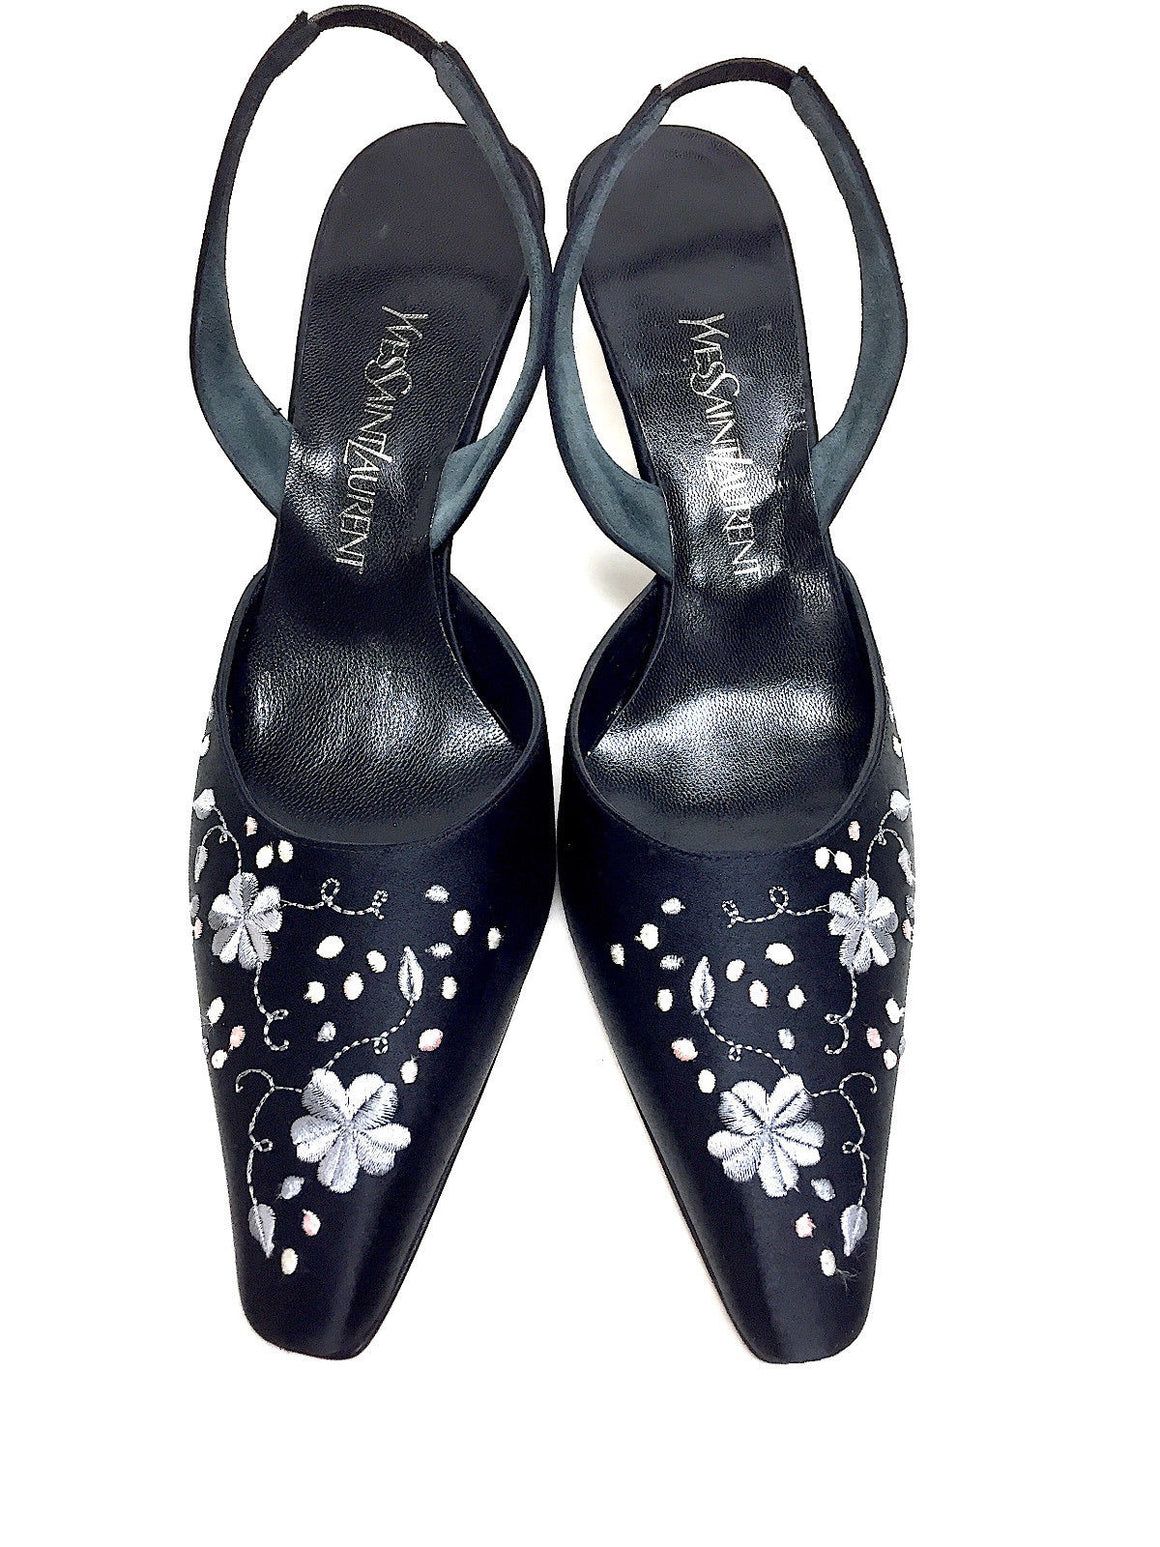 YVES ST. LAURENT - YSL  New  Black Floral Embroidered Silk Slingbacks  Size: 7.5M